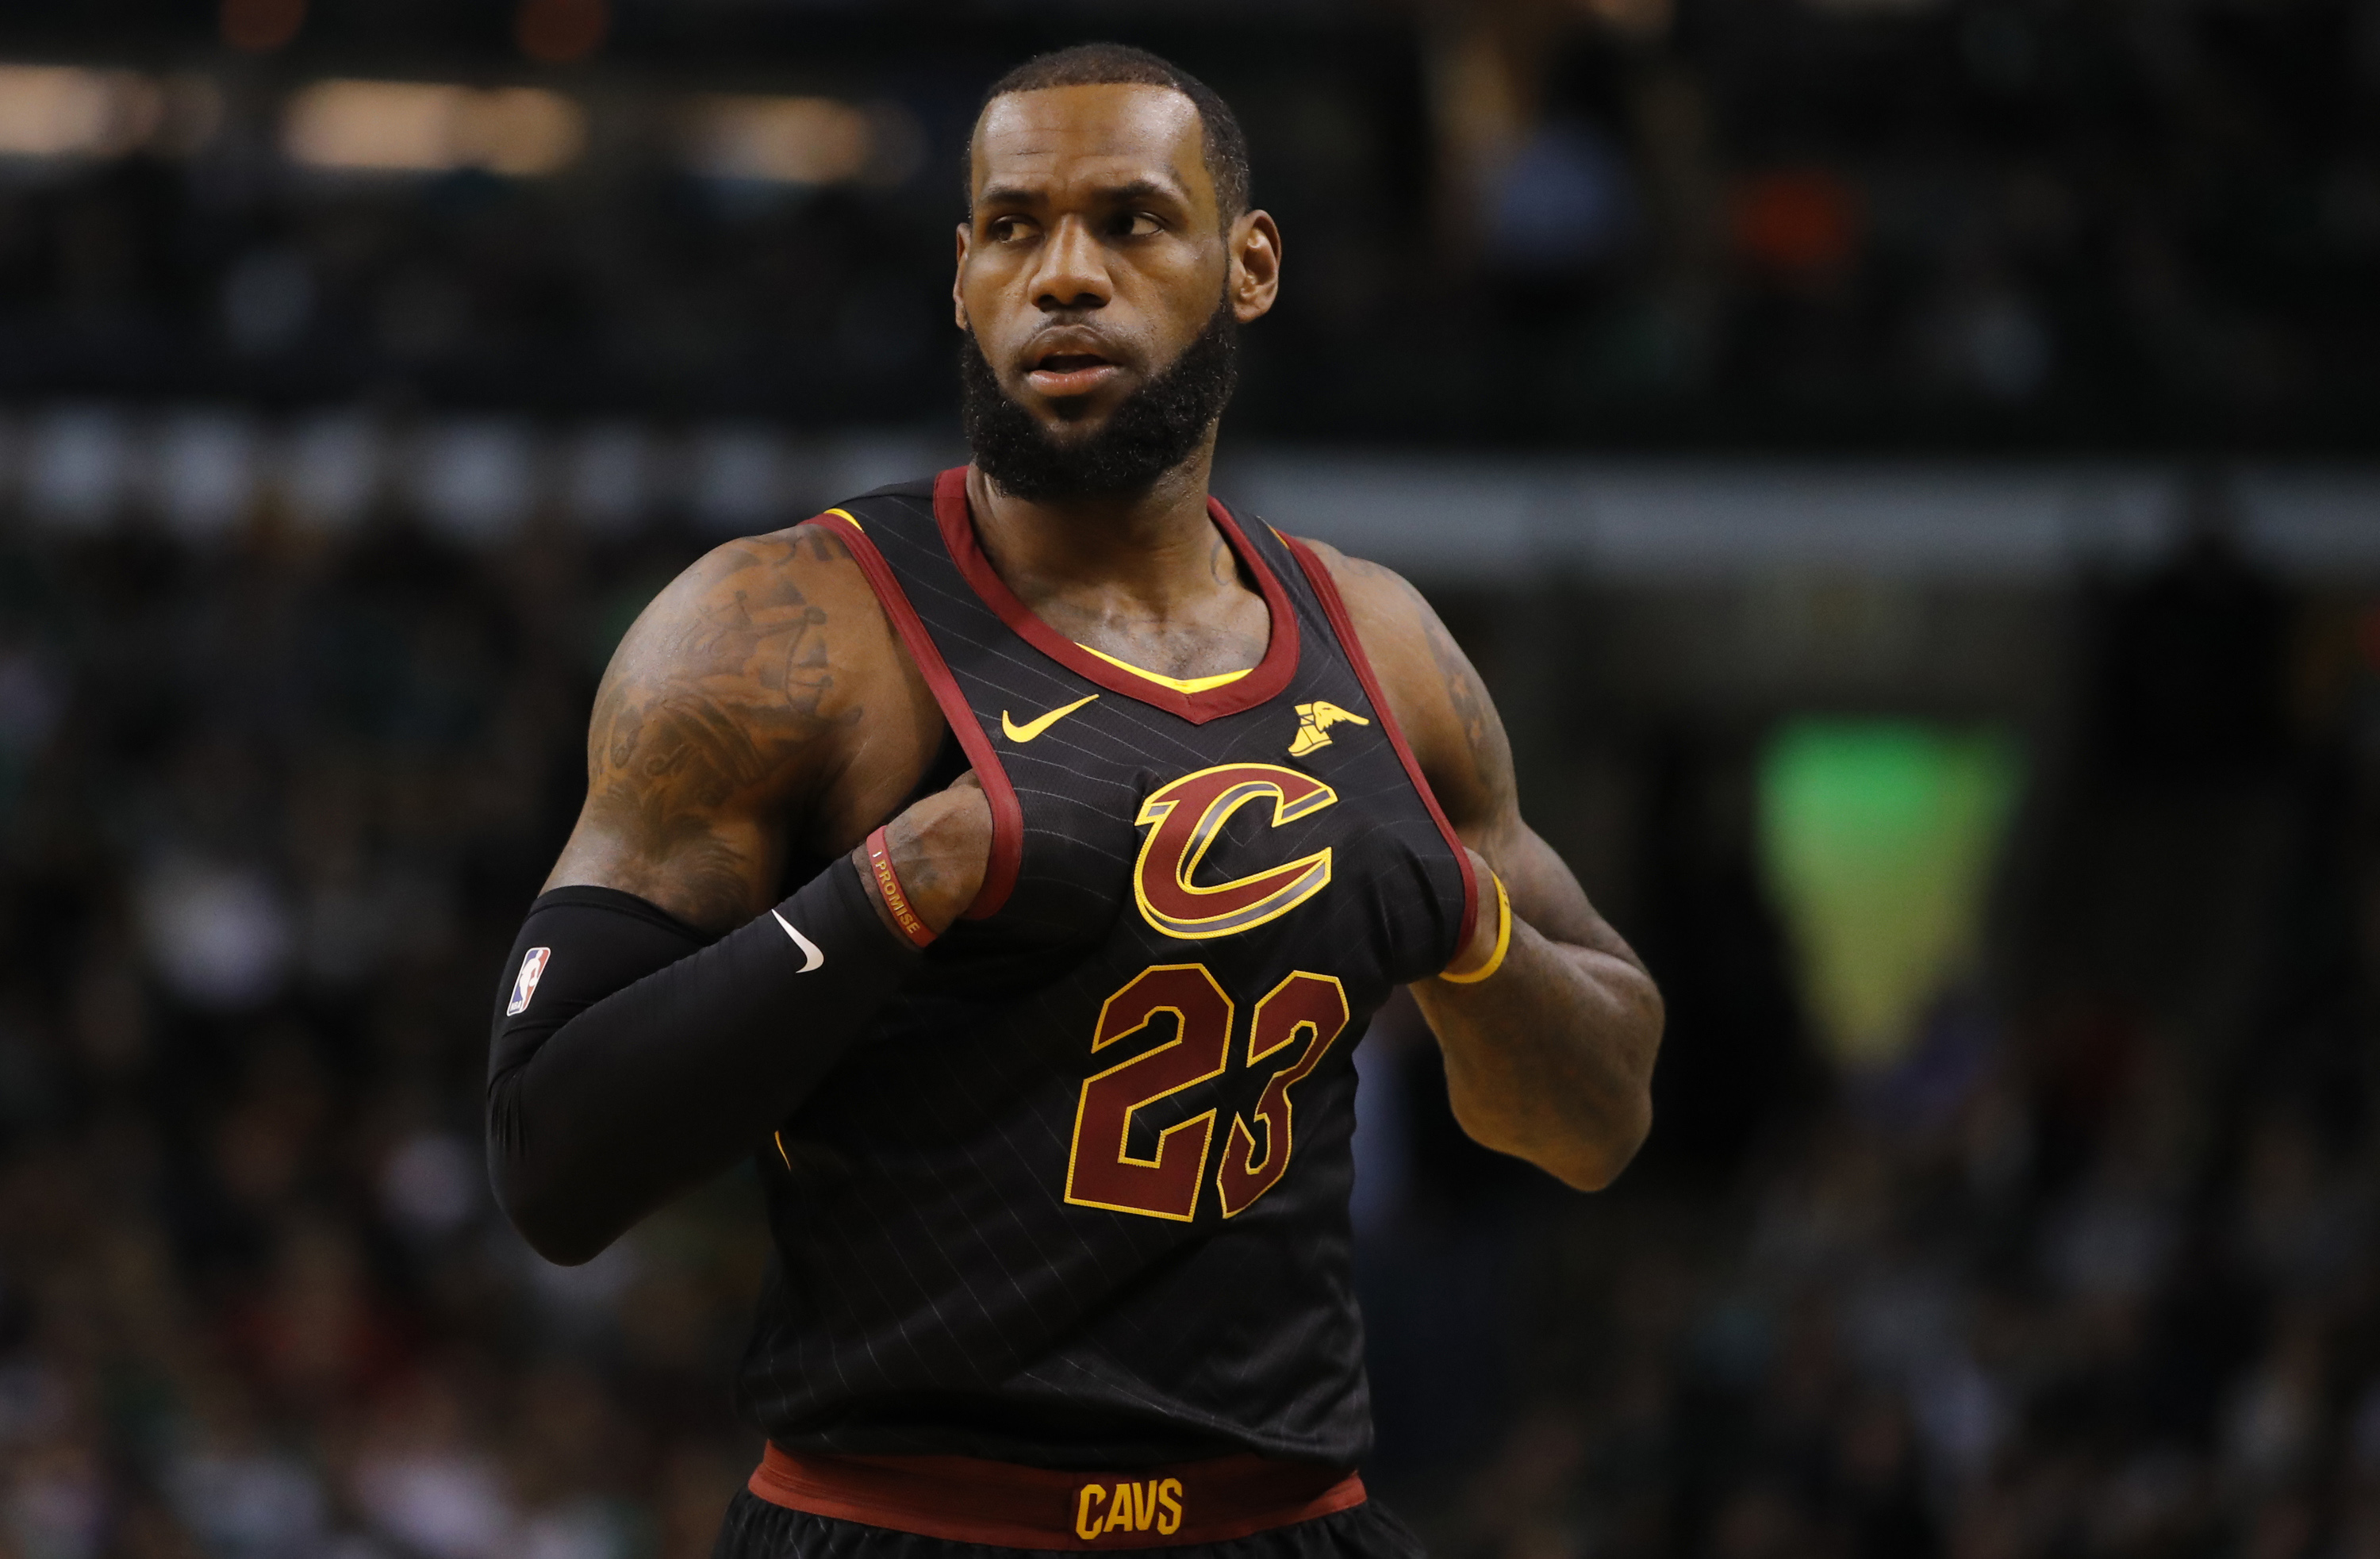 81b1e695f2c5 Sleeves   http   soccertopnews.com wp-content uploads 2018 06 lebron-james-alt-reacts-celtics.jpg